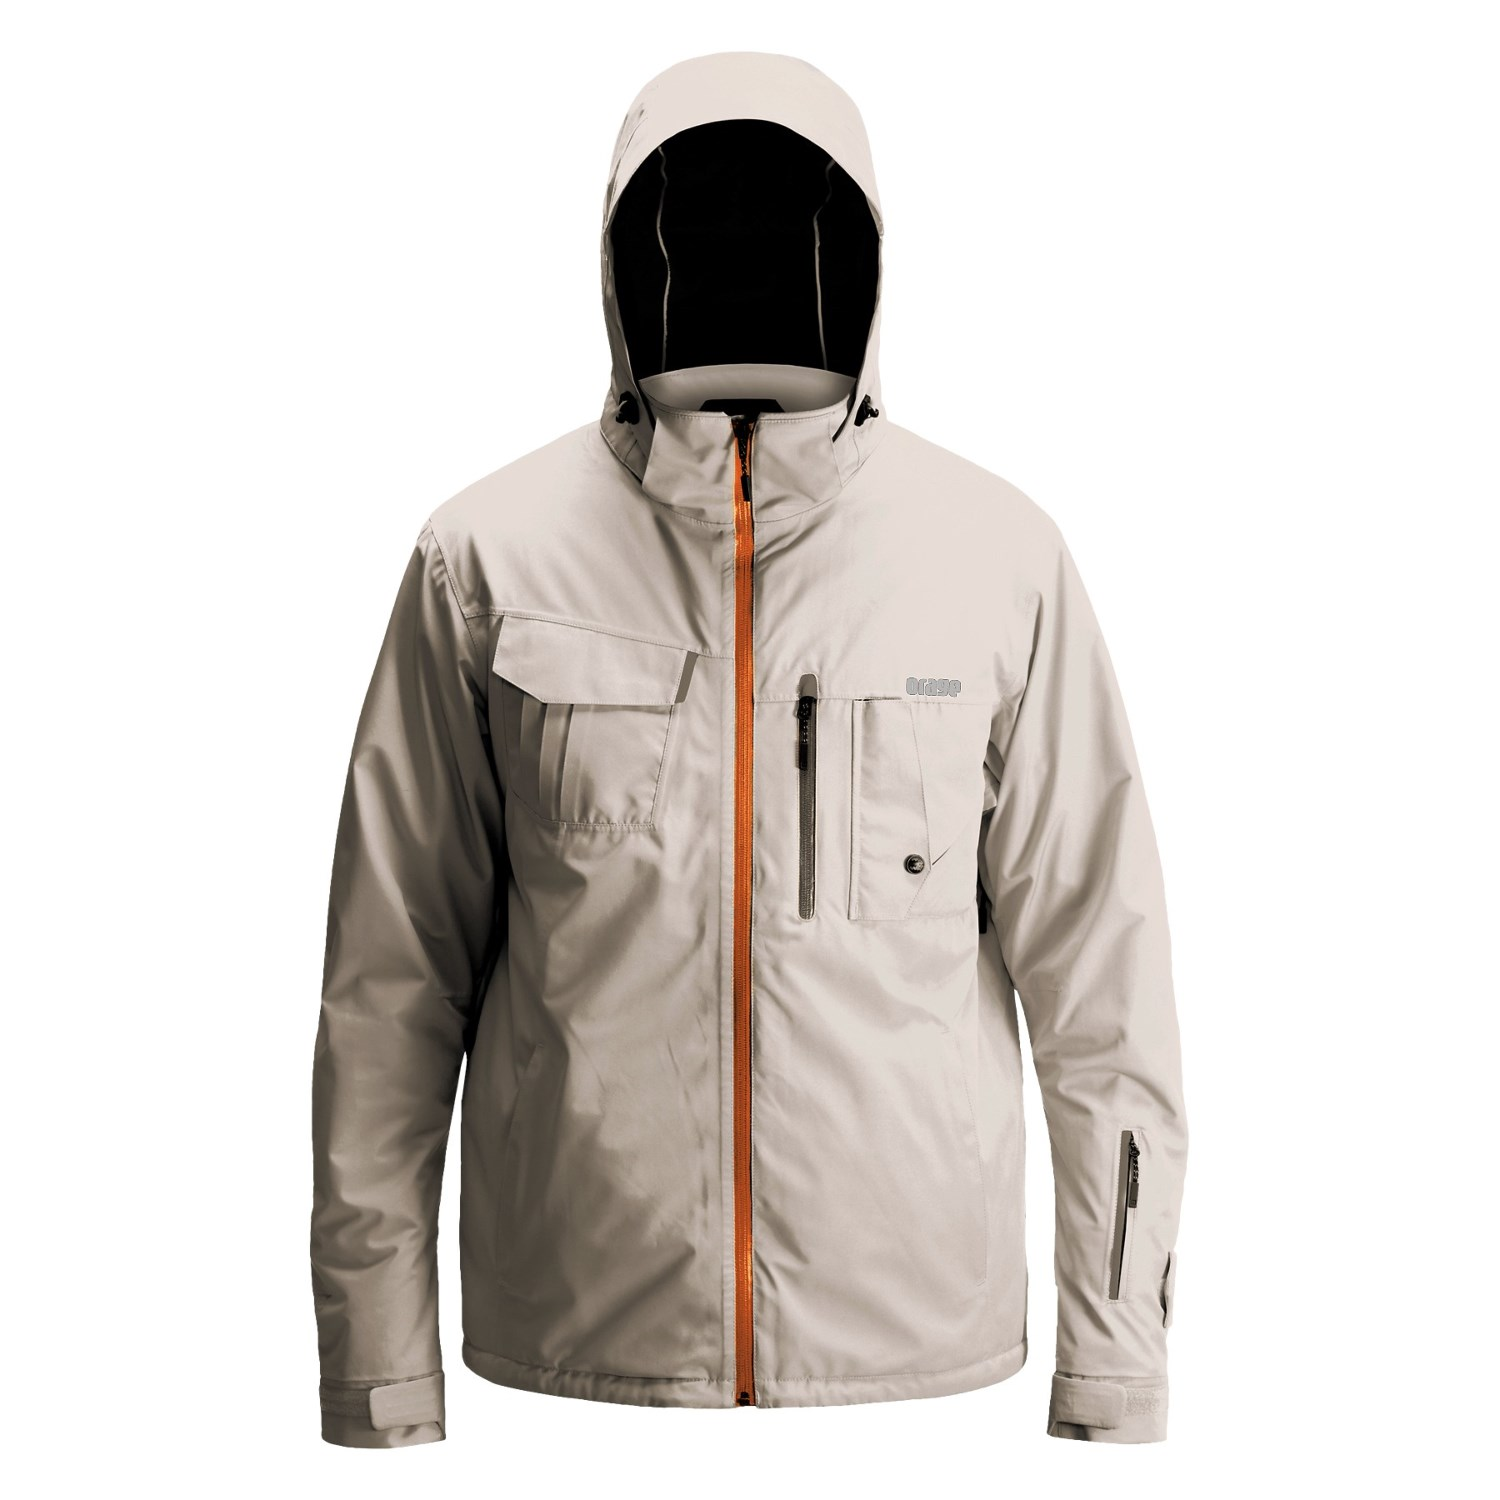 orage-sparwood-gore-tex-performance-shell-jacket-waterproof-insulated-for-men-in-cement%7Ep%7E3876h_02%7E1500.jpg